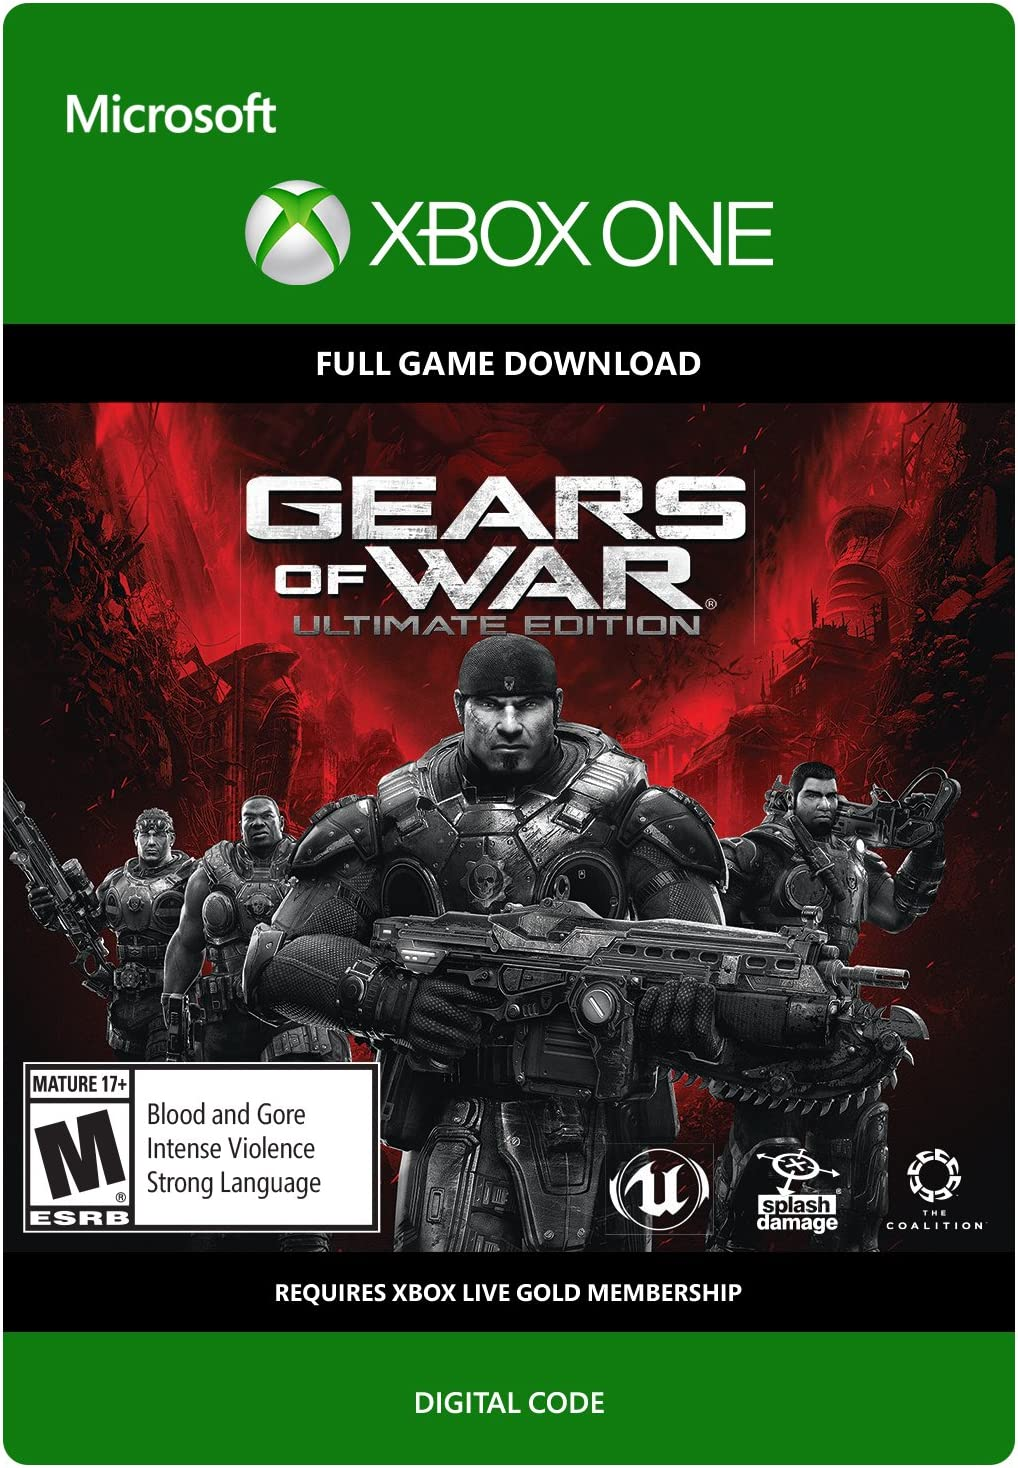 f209b3031 Amazon.com: Gears of War: Ultimate Edition Day One Version - Xbox One  Digital Code: Video Games